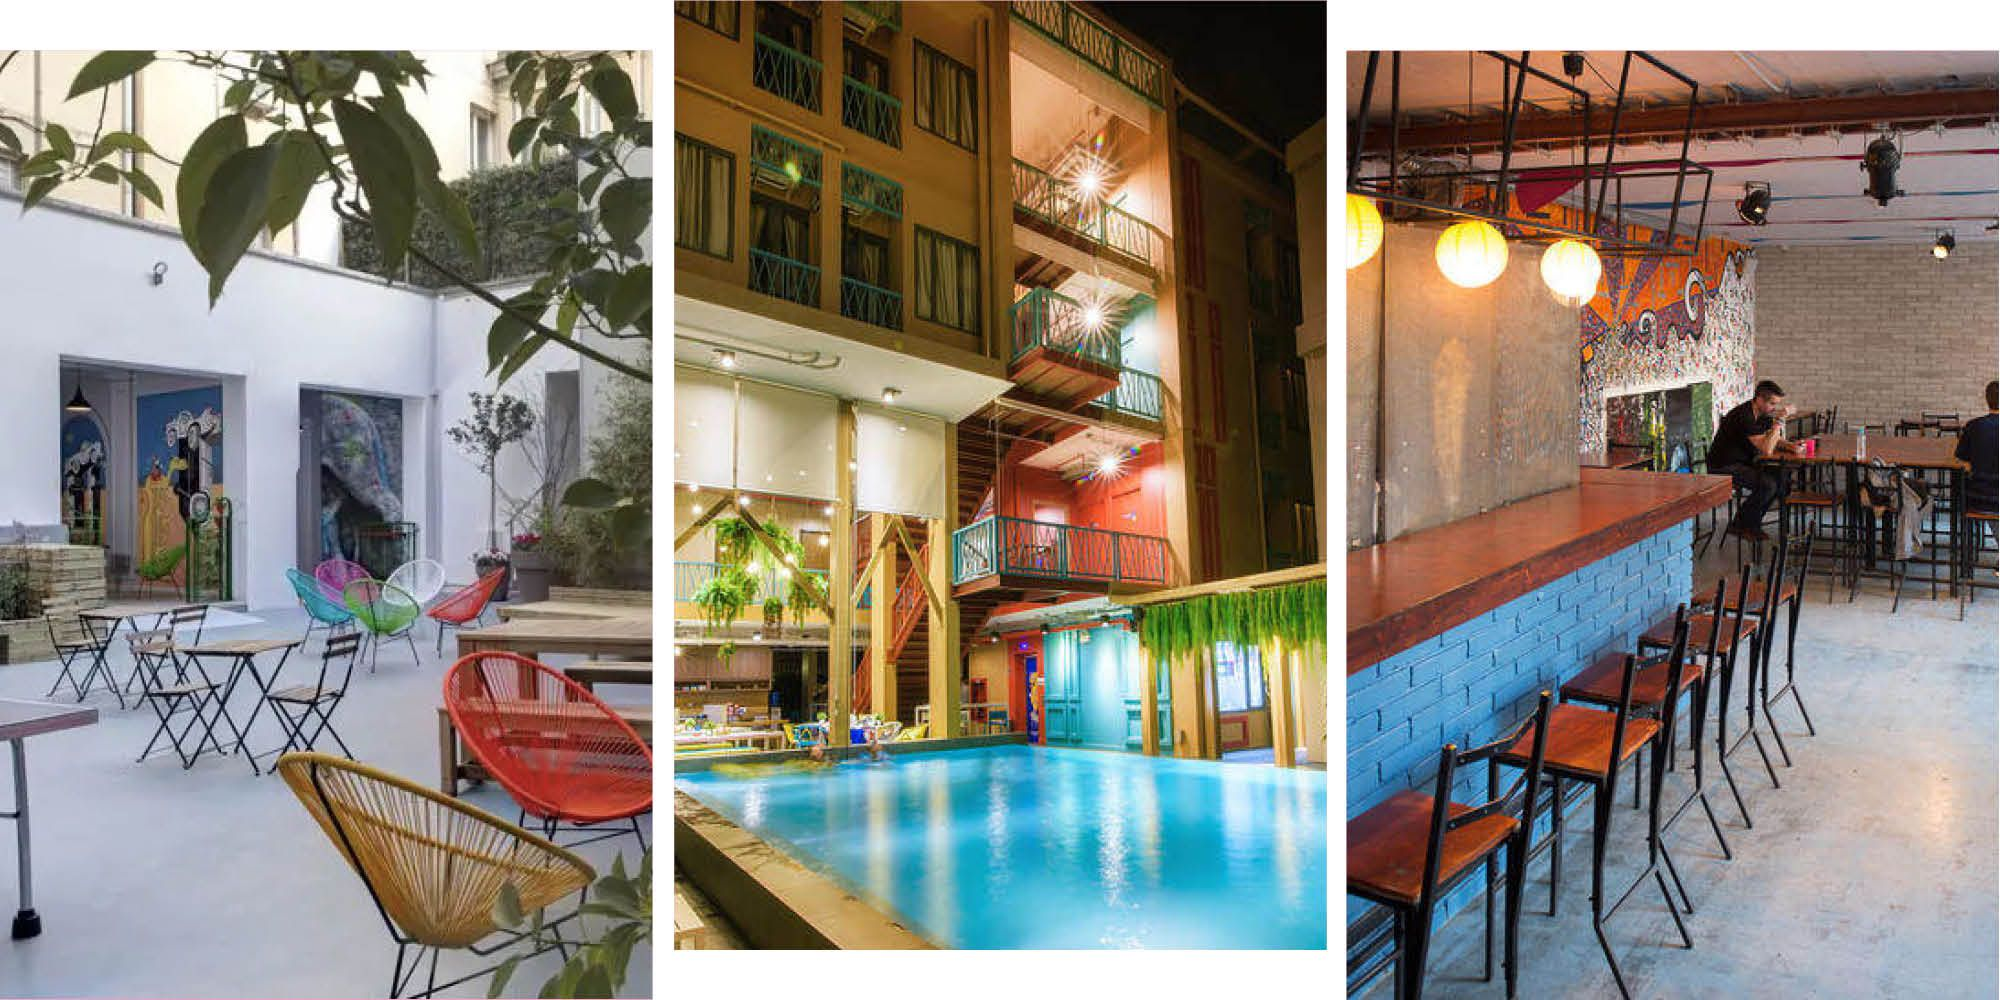 The 10 best hostels for solo female travel, as voted for by female travellers